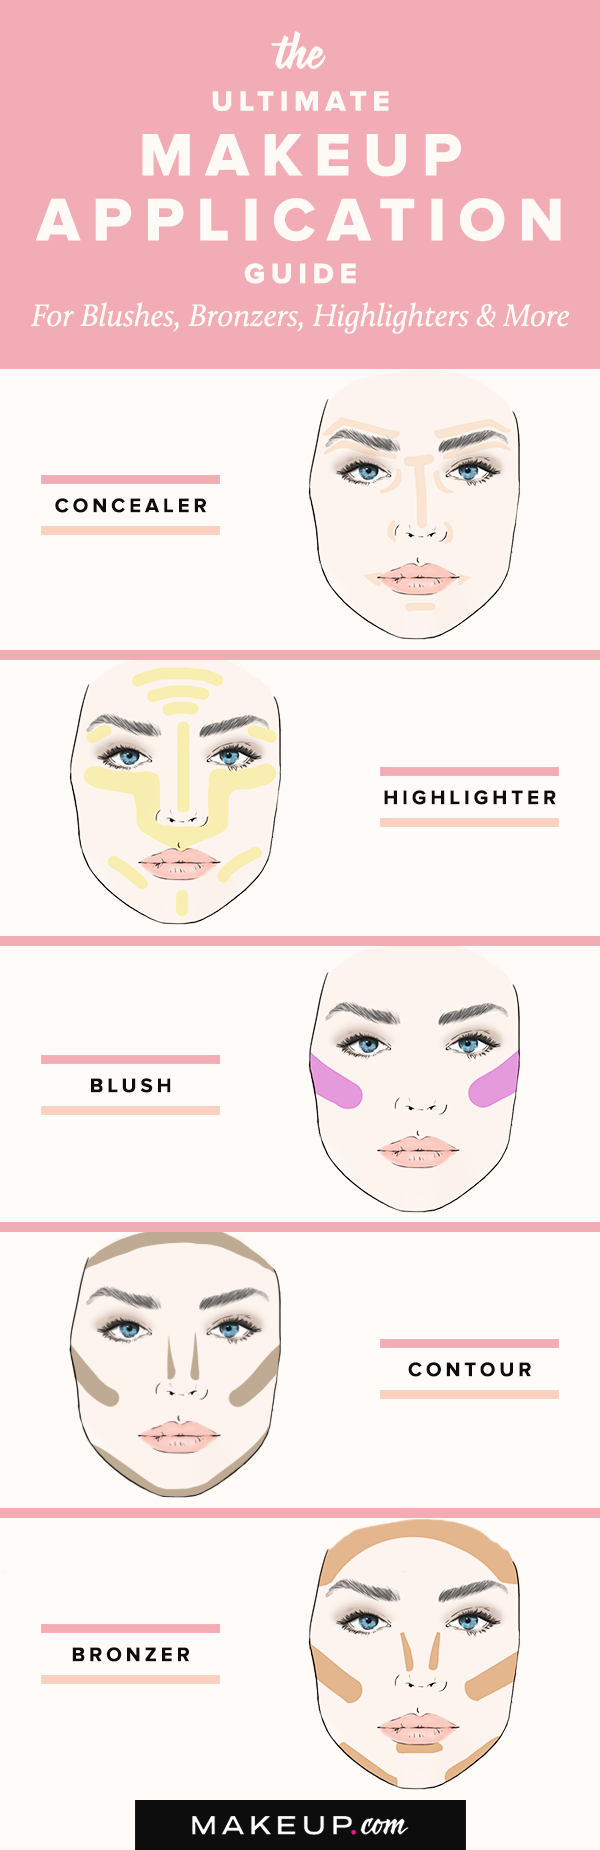 pinterest: @jaidyngrace MAKEUP TIPS AND IDEAS WE LOVE  Skin